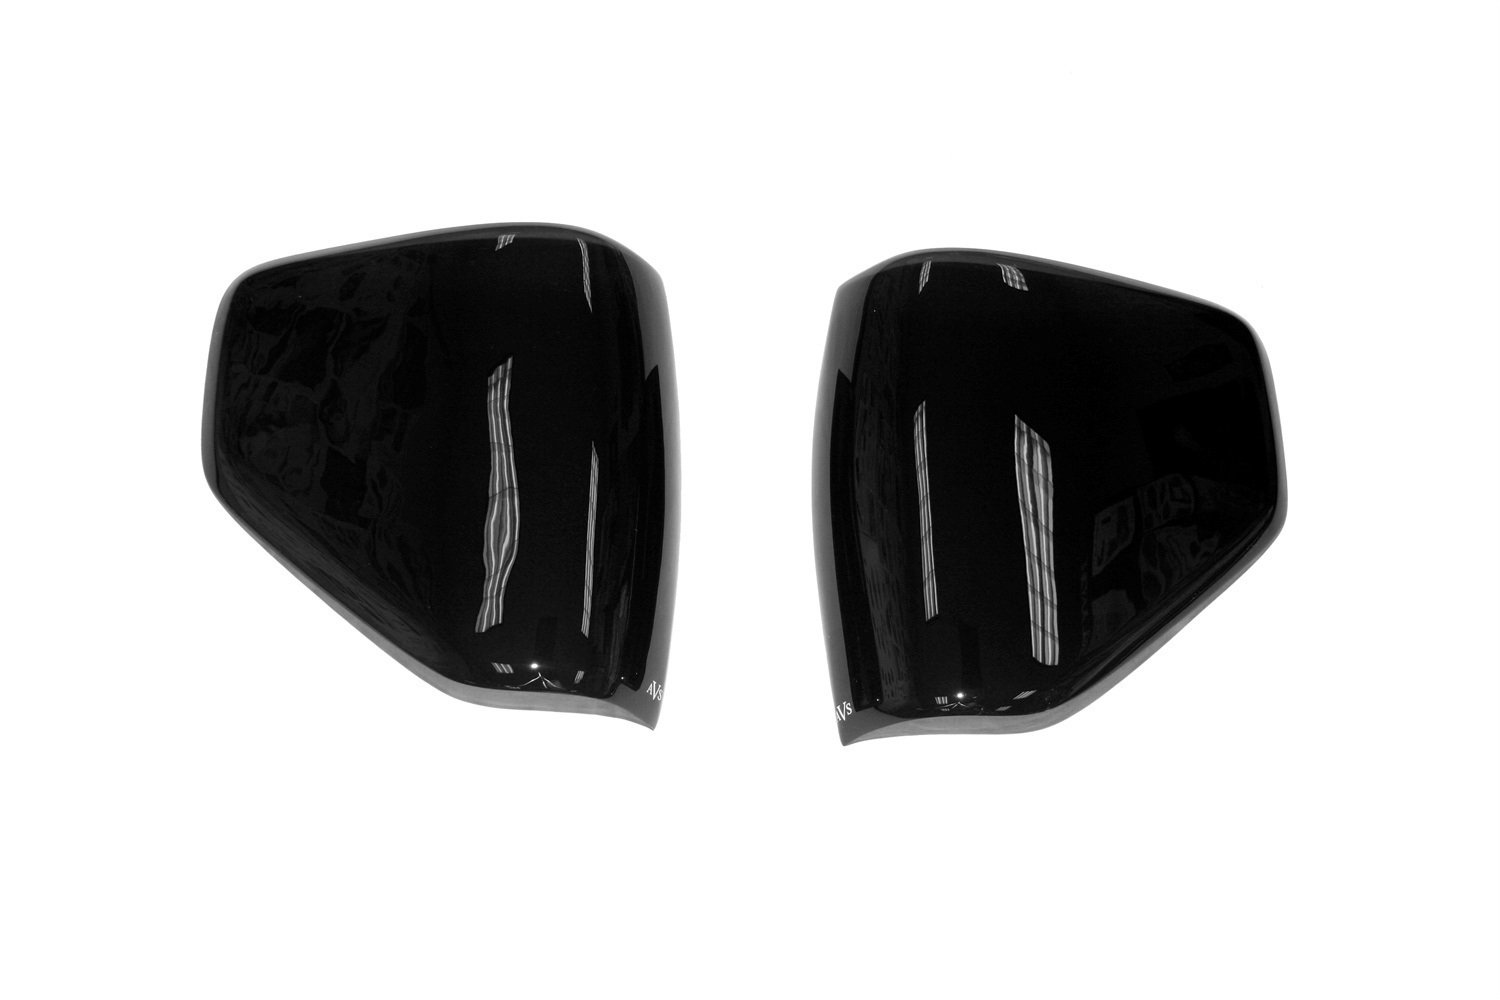 Auto Ventshade 33428 Tailshades Blackout Tailight Covers for 2012-2014 Ford Mustang